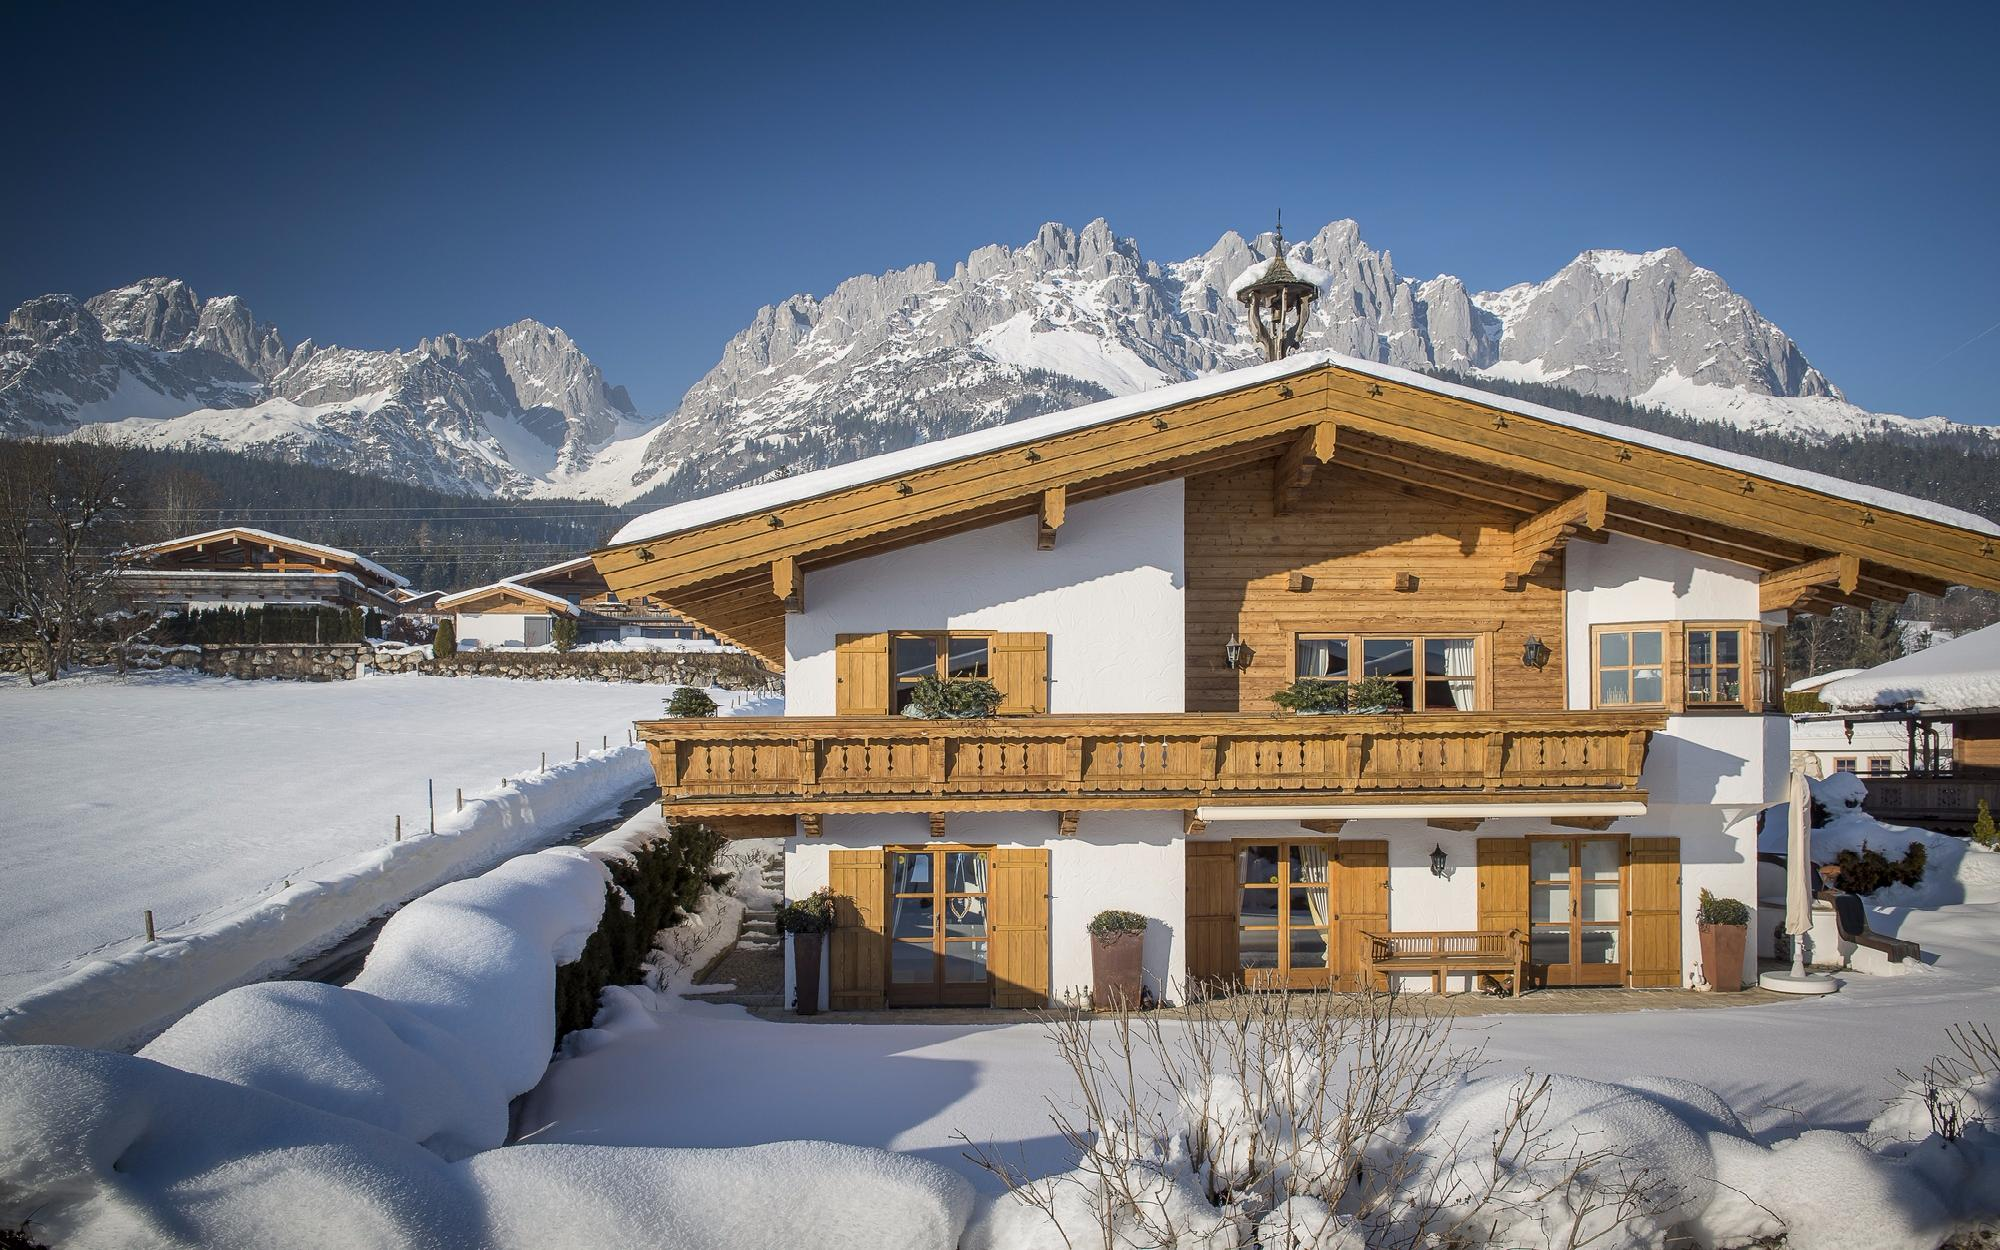 Spacious and high-quality Tyrolean country house in Going 1 - Tirol - Austria